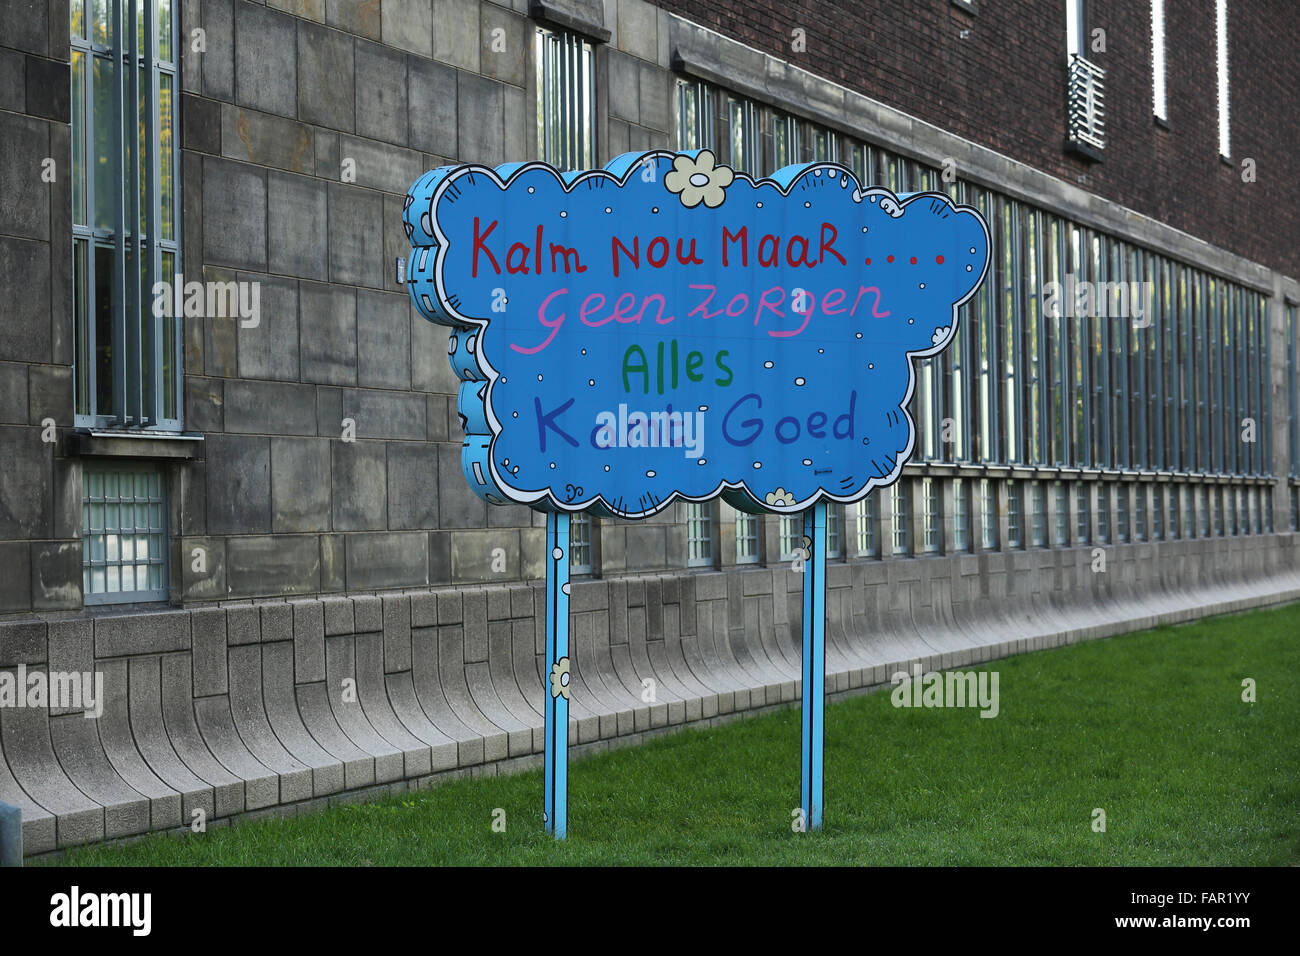 A cloud shaped sign in Rotterdam, the Netherlands. The sign tells people to have no worries. - Stock Image